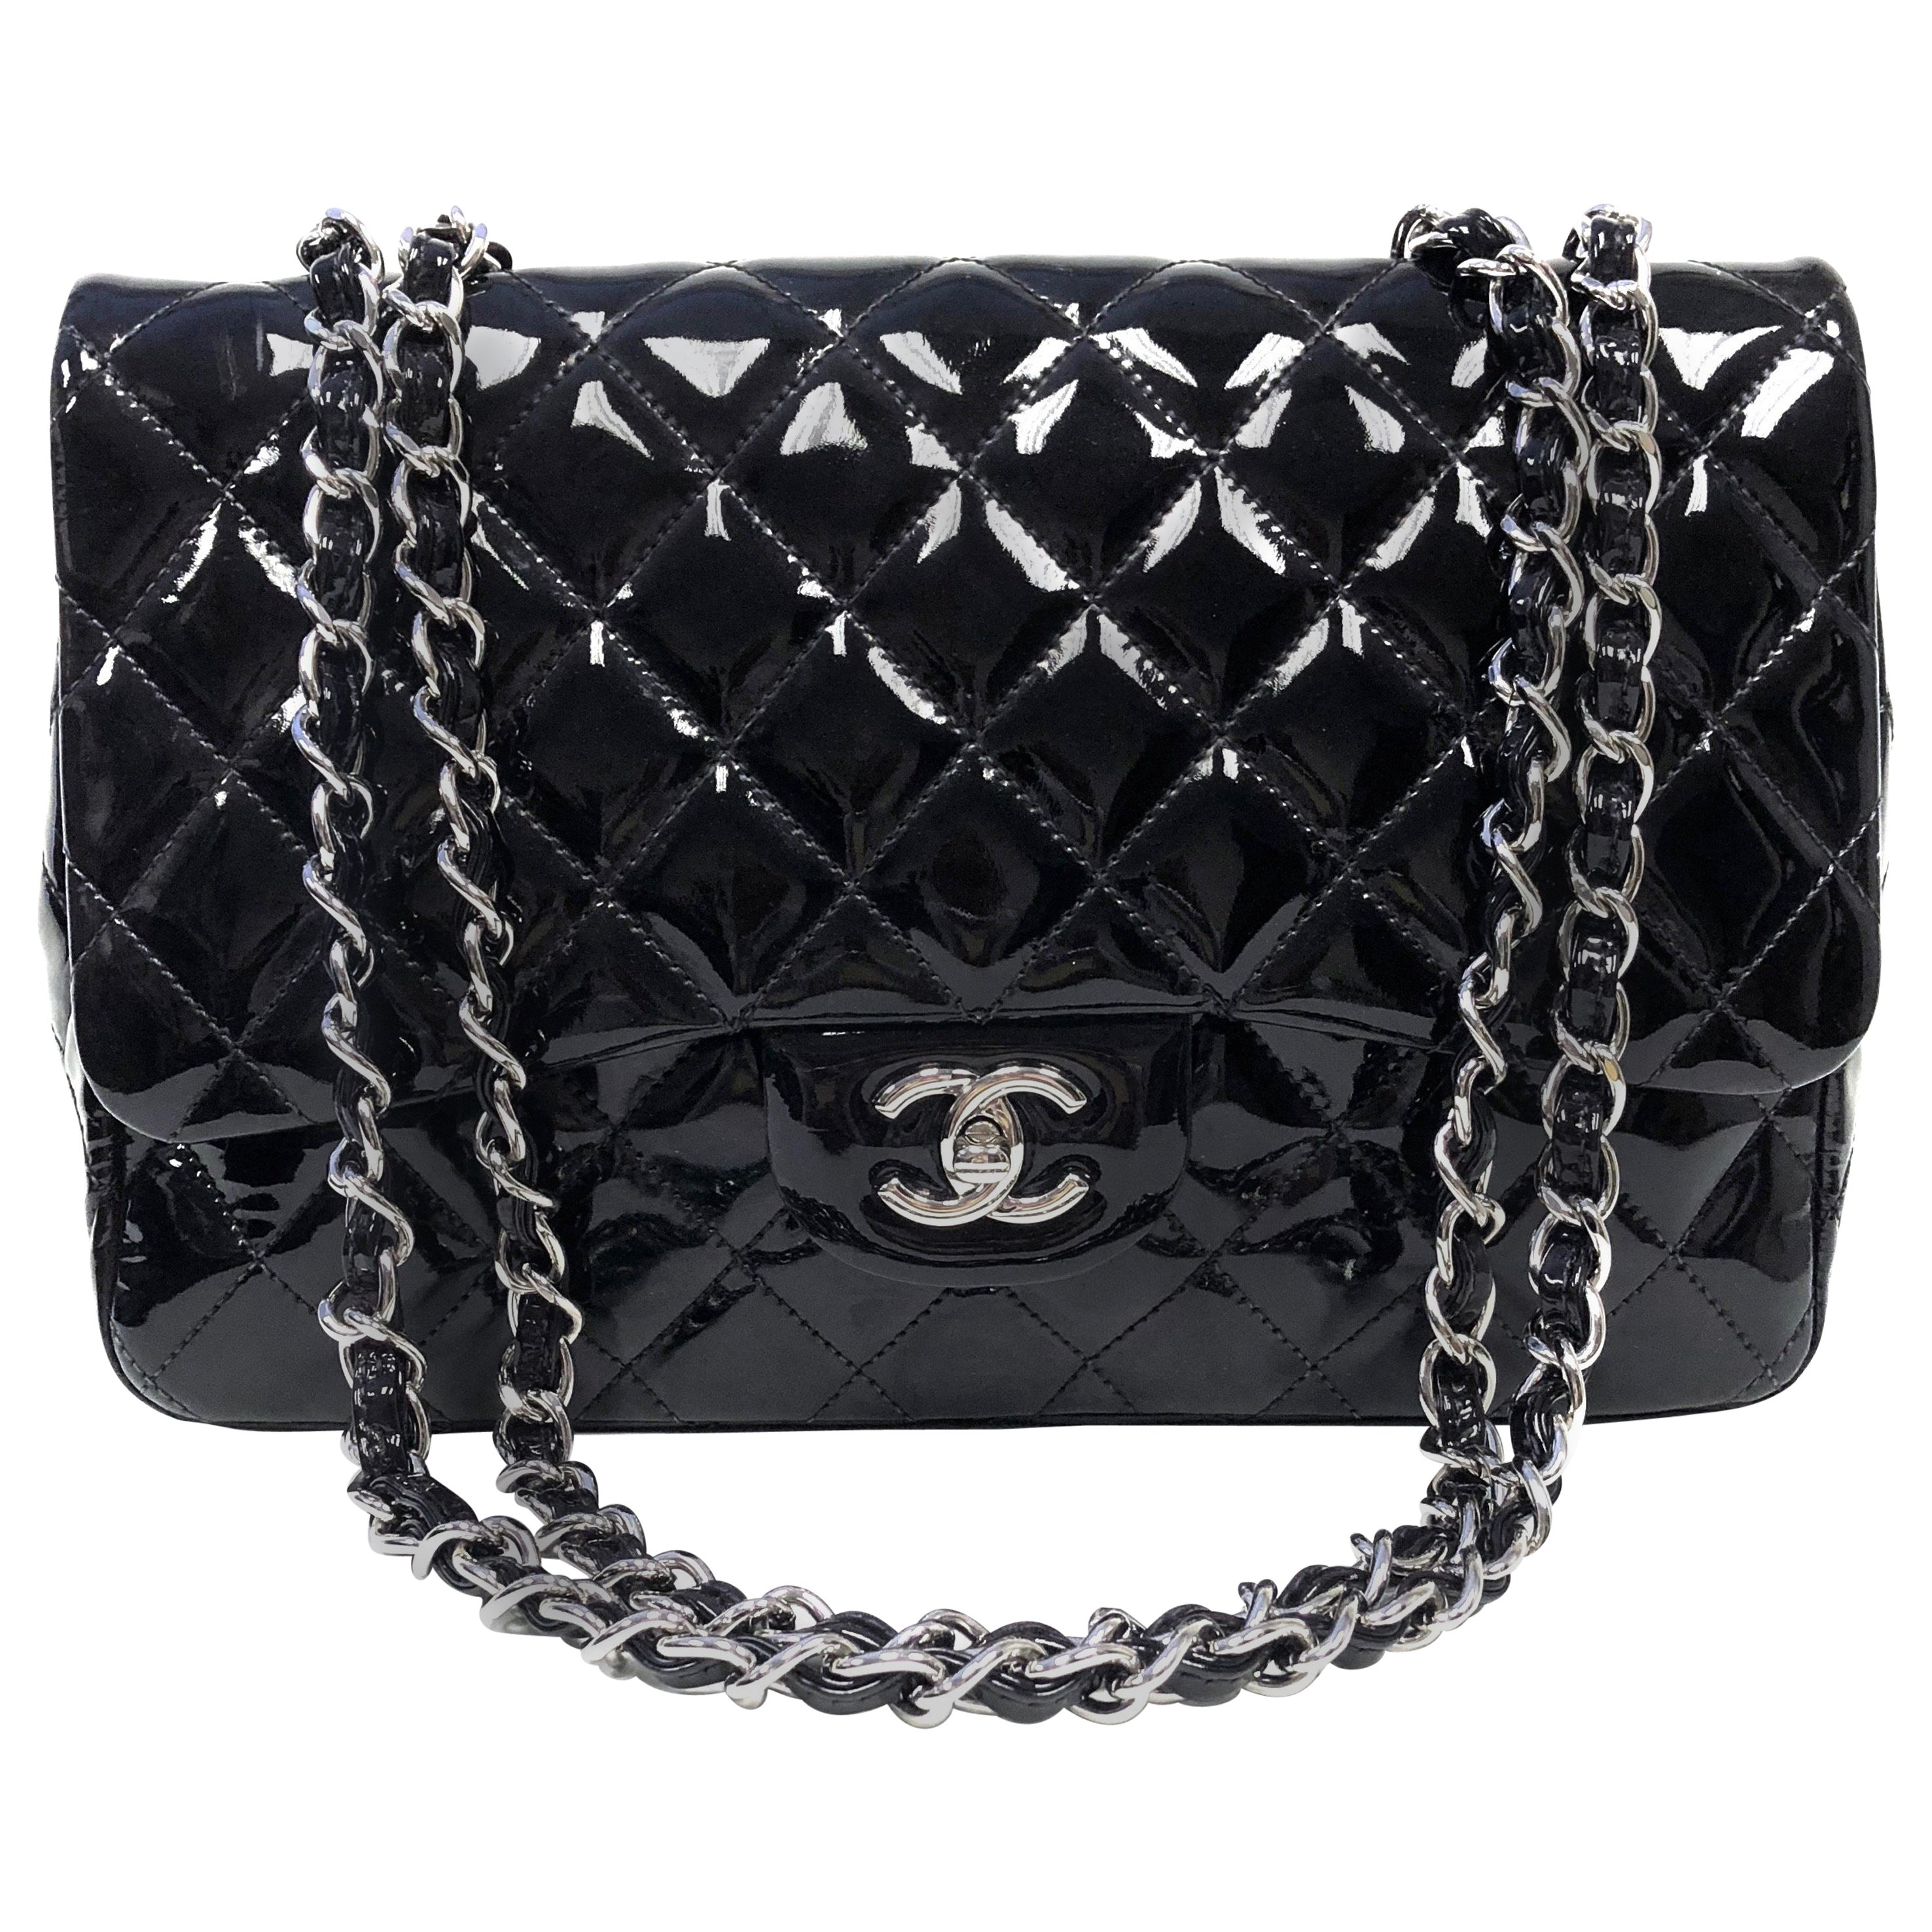 427bc68a8eeadf Chanel Clic Quilted Jumbo Single Flap Black Patent Bag At 1stdibs